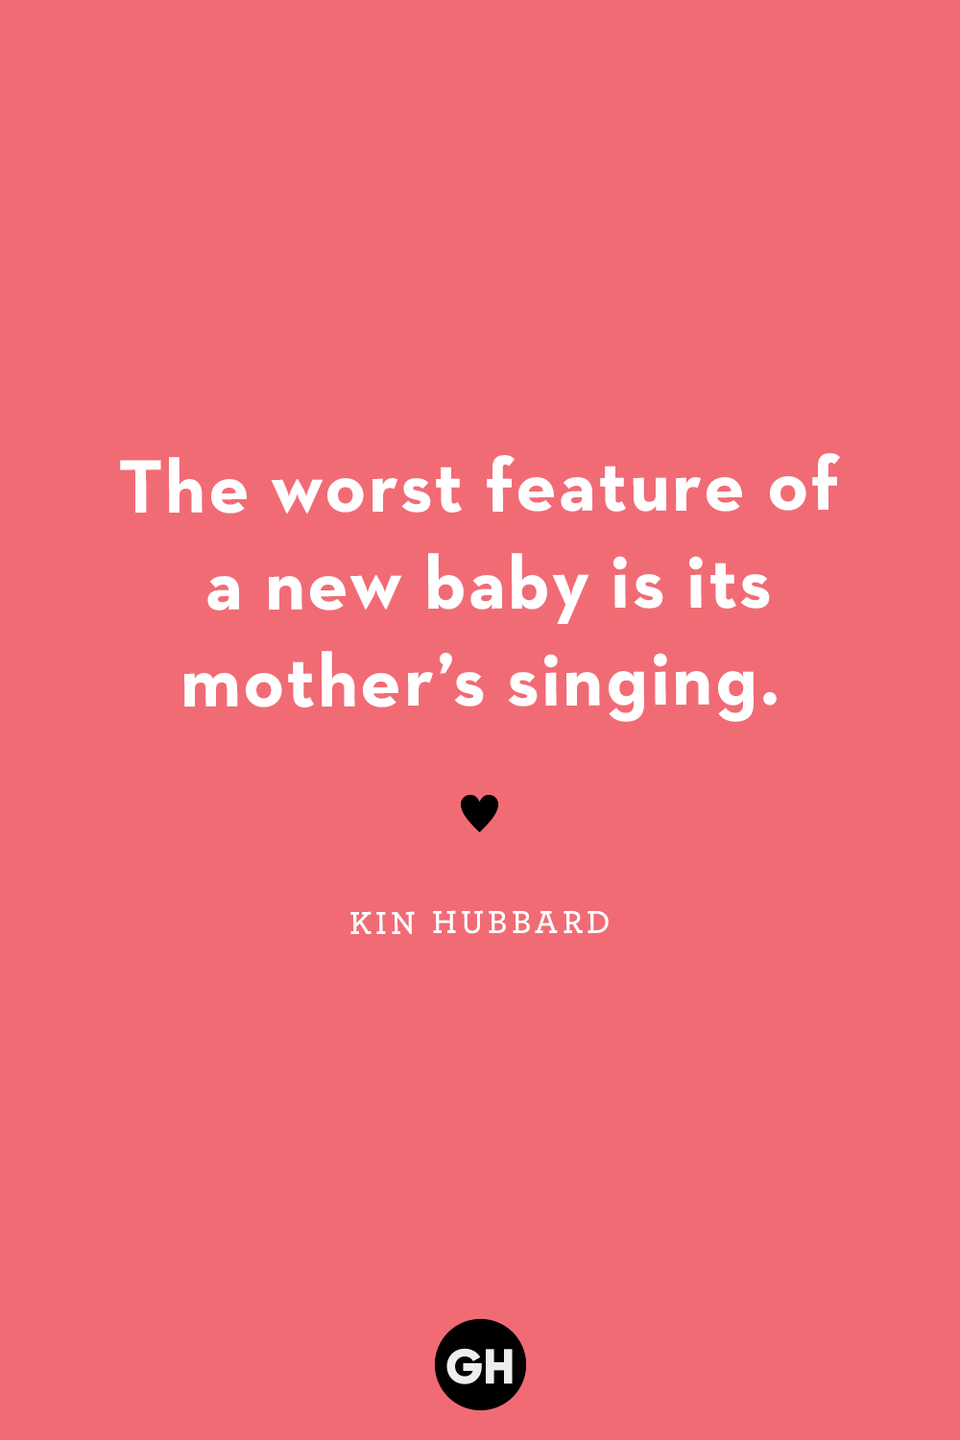 <p>The worst feature of a new baby is its mother's singing.</p>